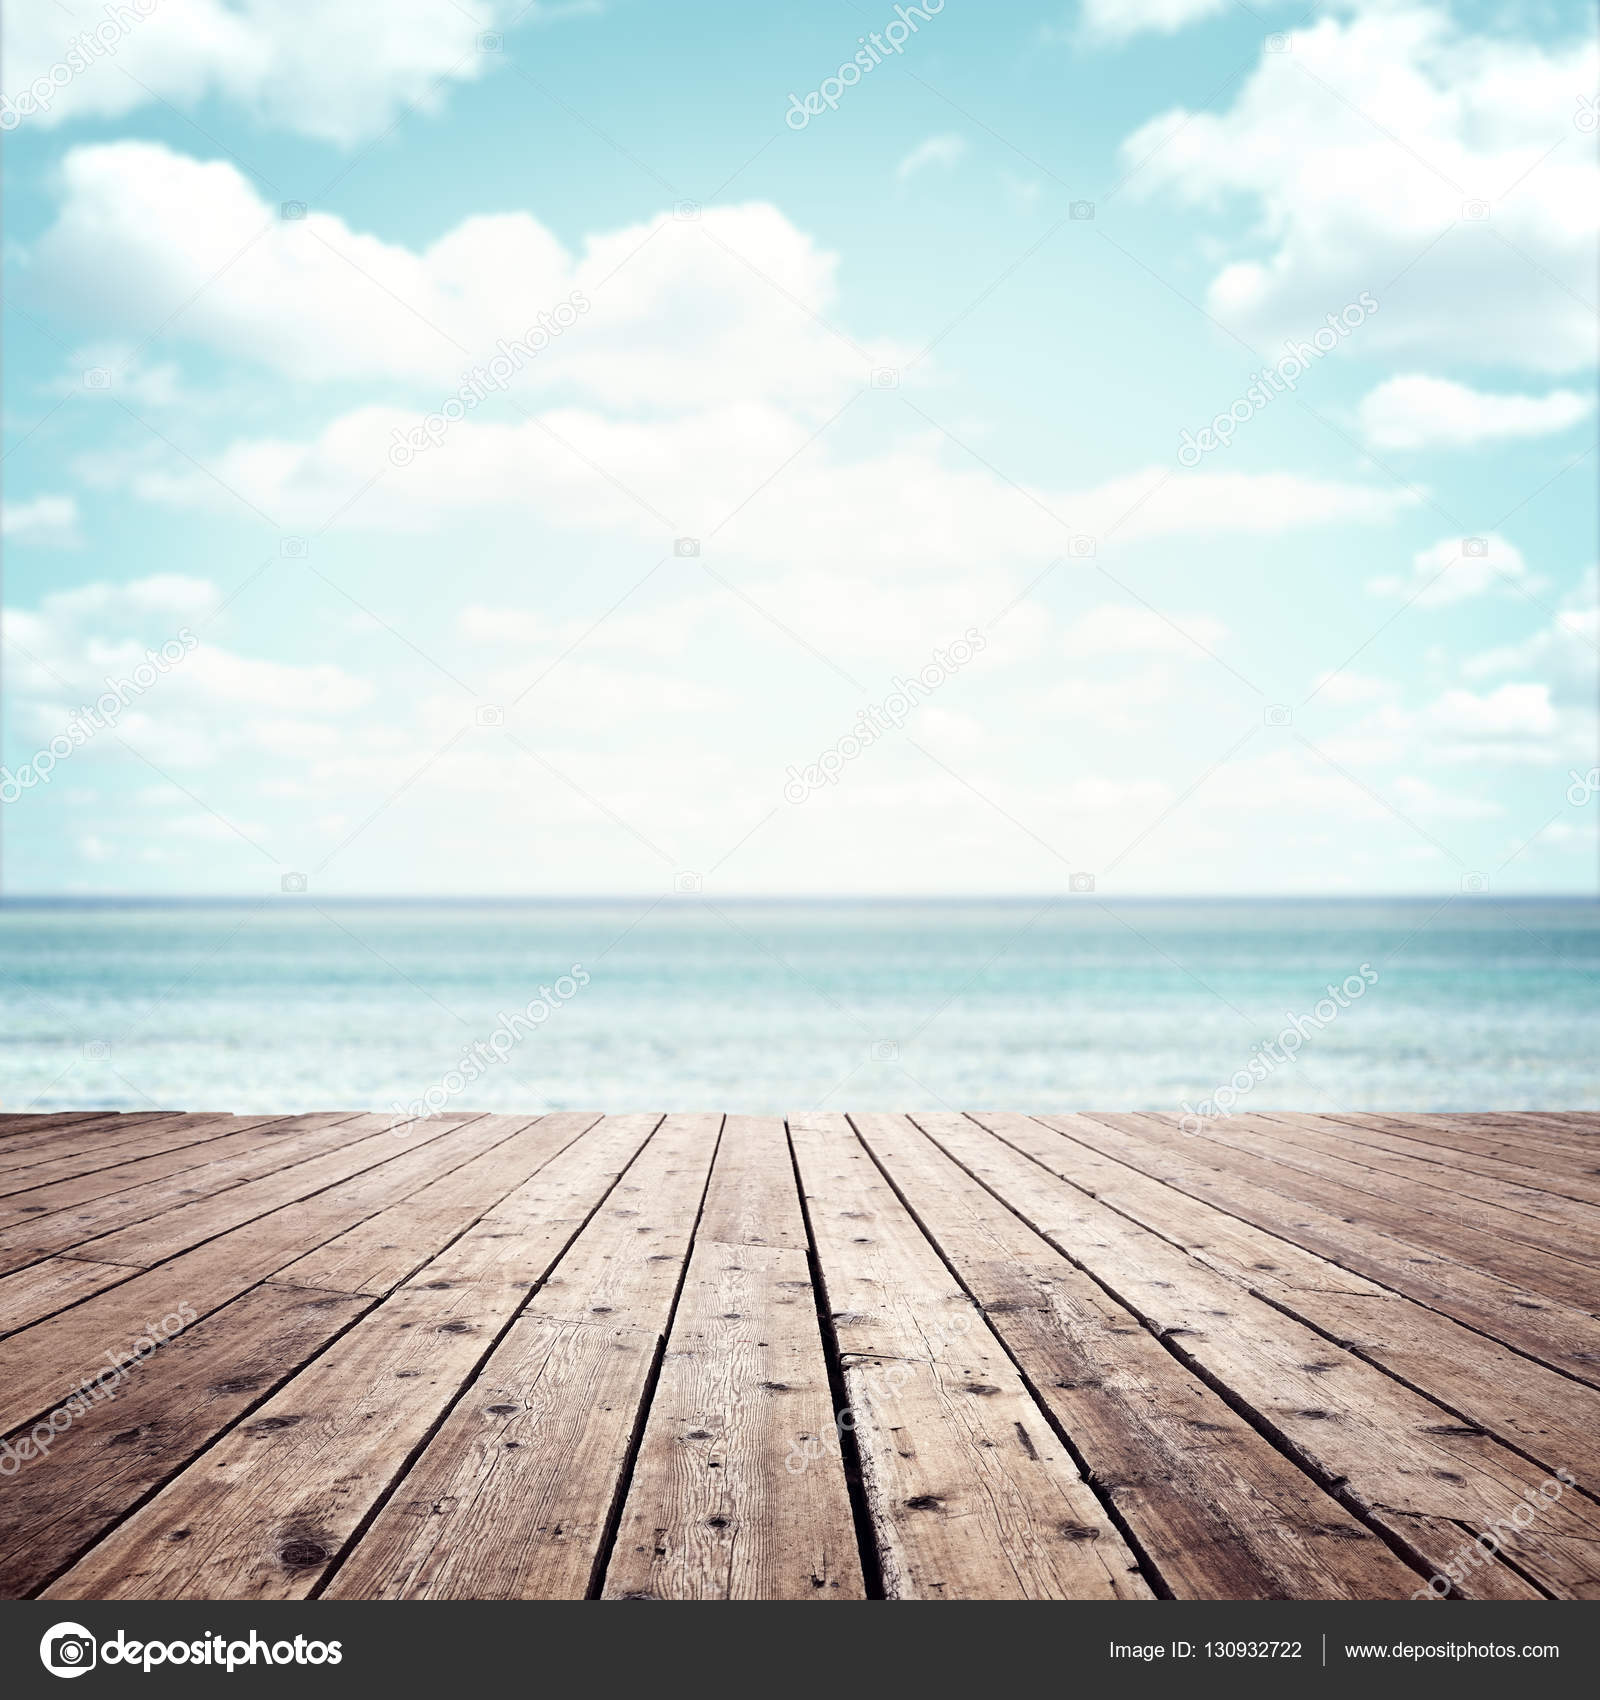 Wood Floor On Beach Sea And Blue Sky For Background Stock: Stock Photo © BrianAJackson